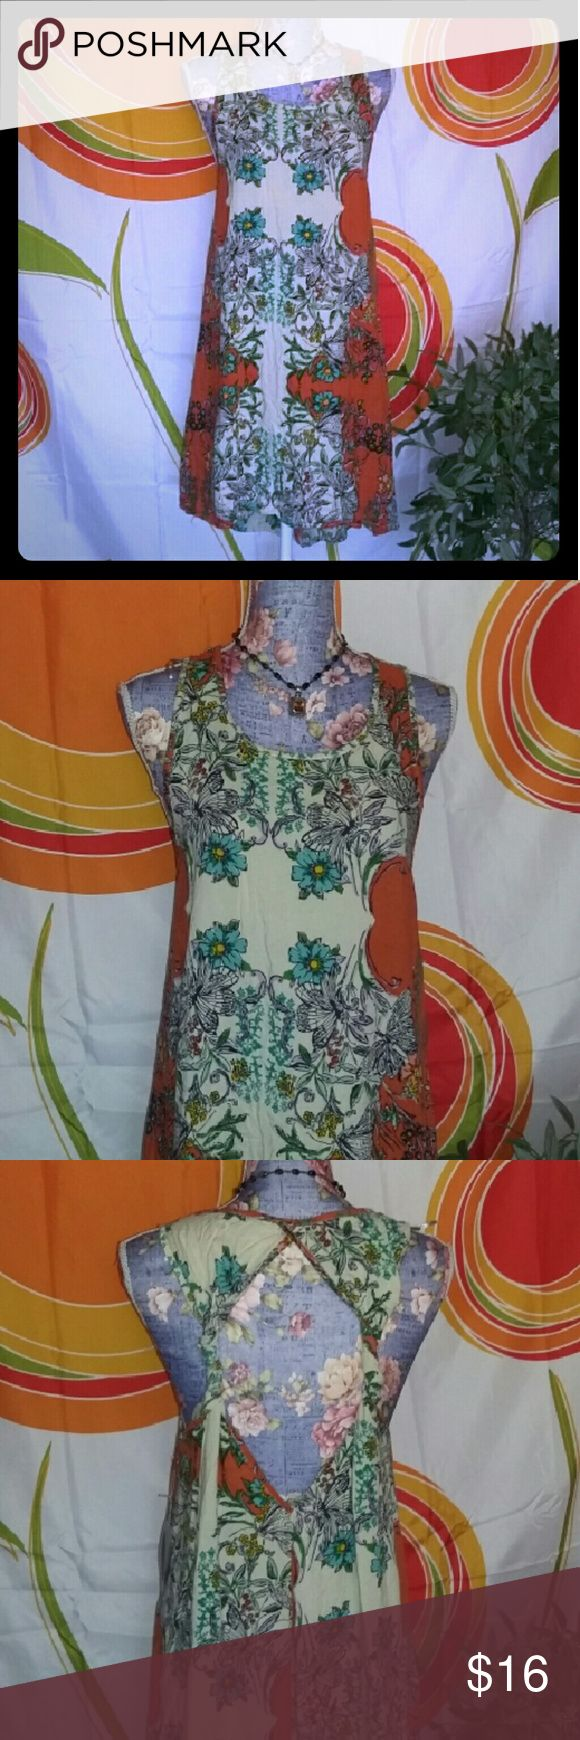 Floral Mini Dress or Cover Up NWT VERY CUTE Absolutely adorable mini dress and a size large by love 21. The material is 100% rayon. The design is a floral design with colors of orange blue green yellow pink turquoise black and cream. This could be used as a mini dress or even a swimsuit cover up. The back has a gorgeous diamond cut out please see the photograph. This is new with tags never been worn. Please message with any questions. Forever 21 Dresses Mini